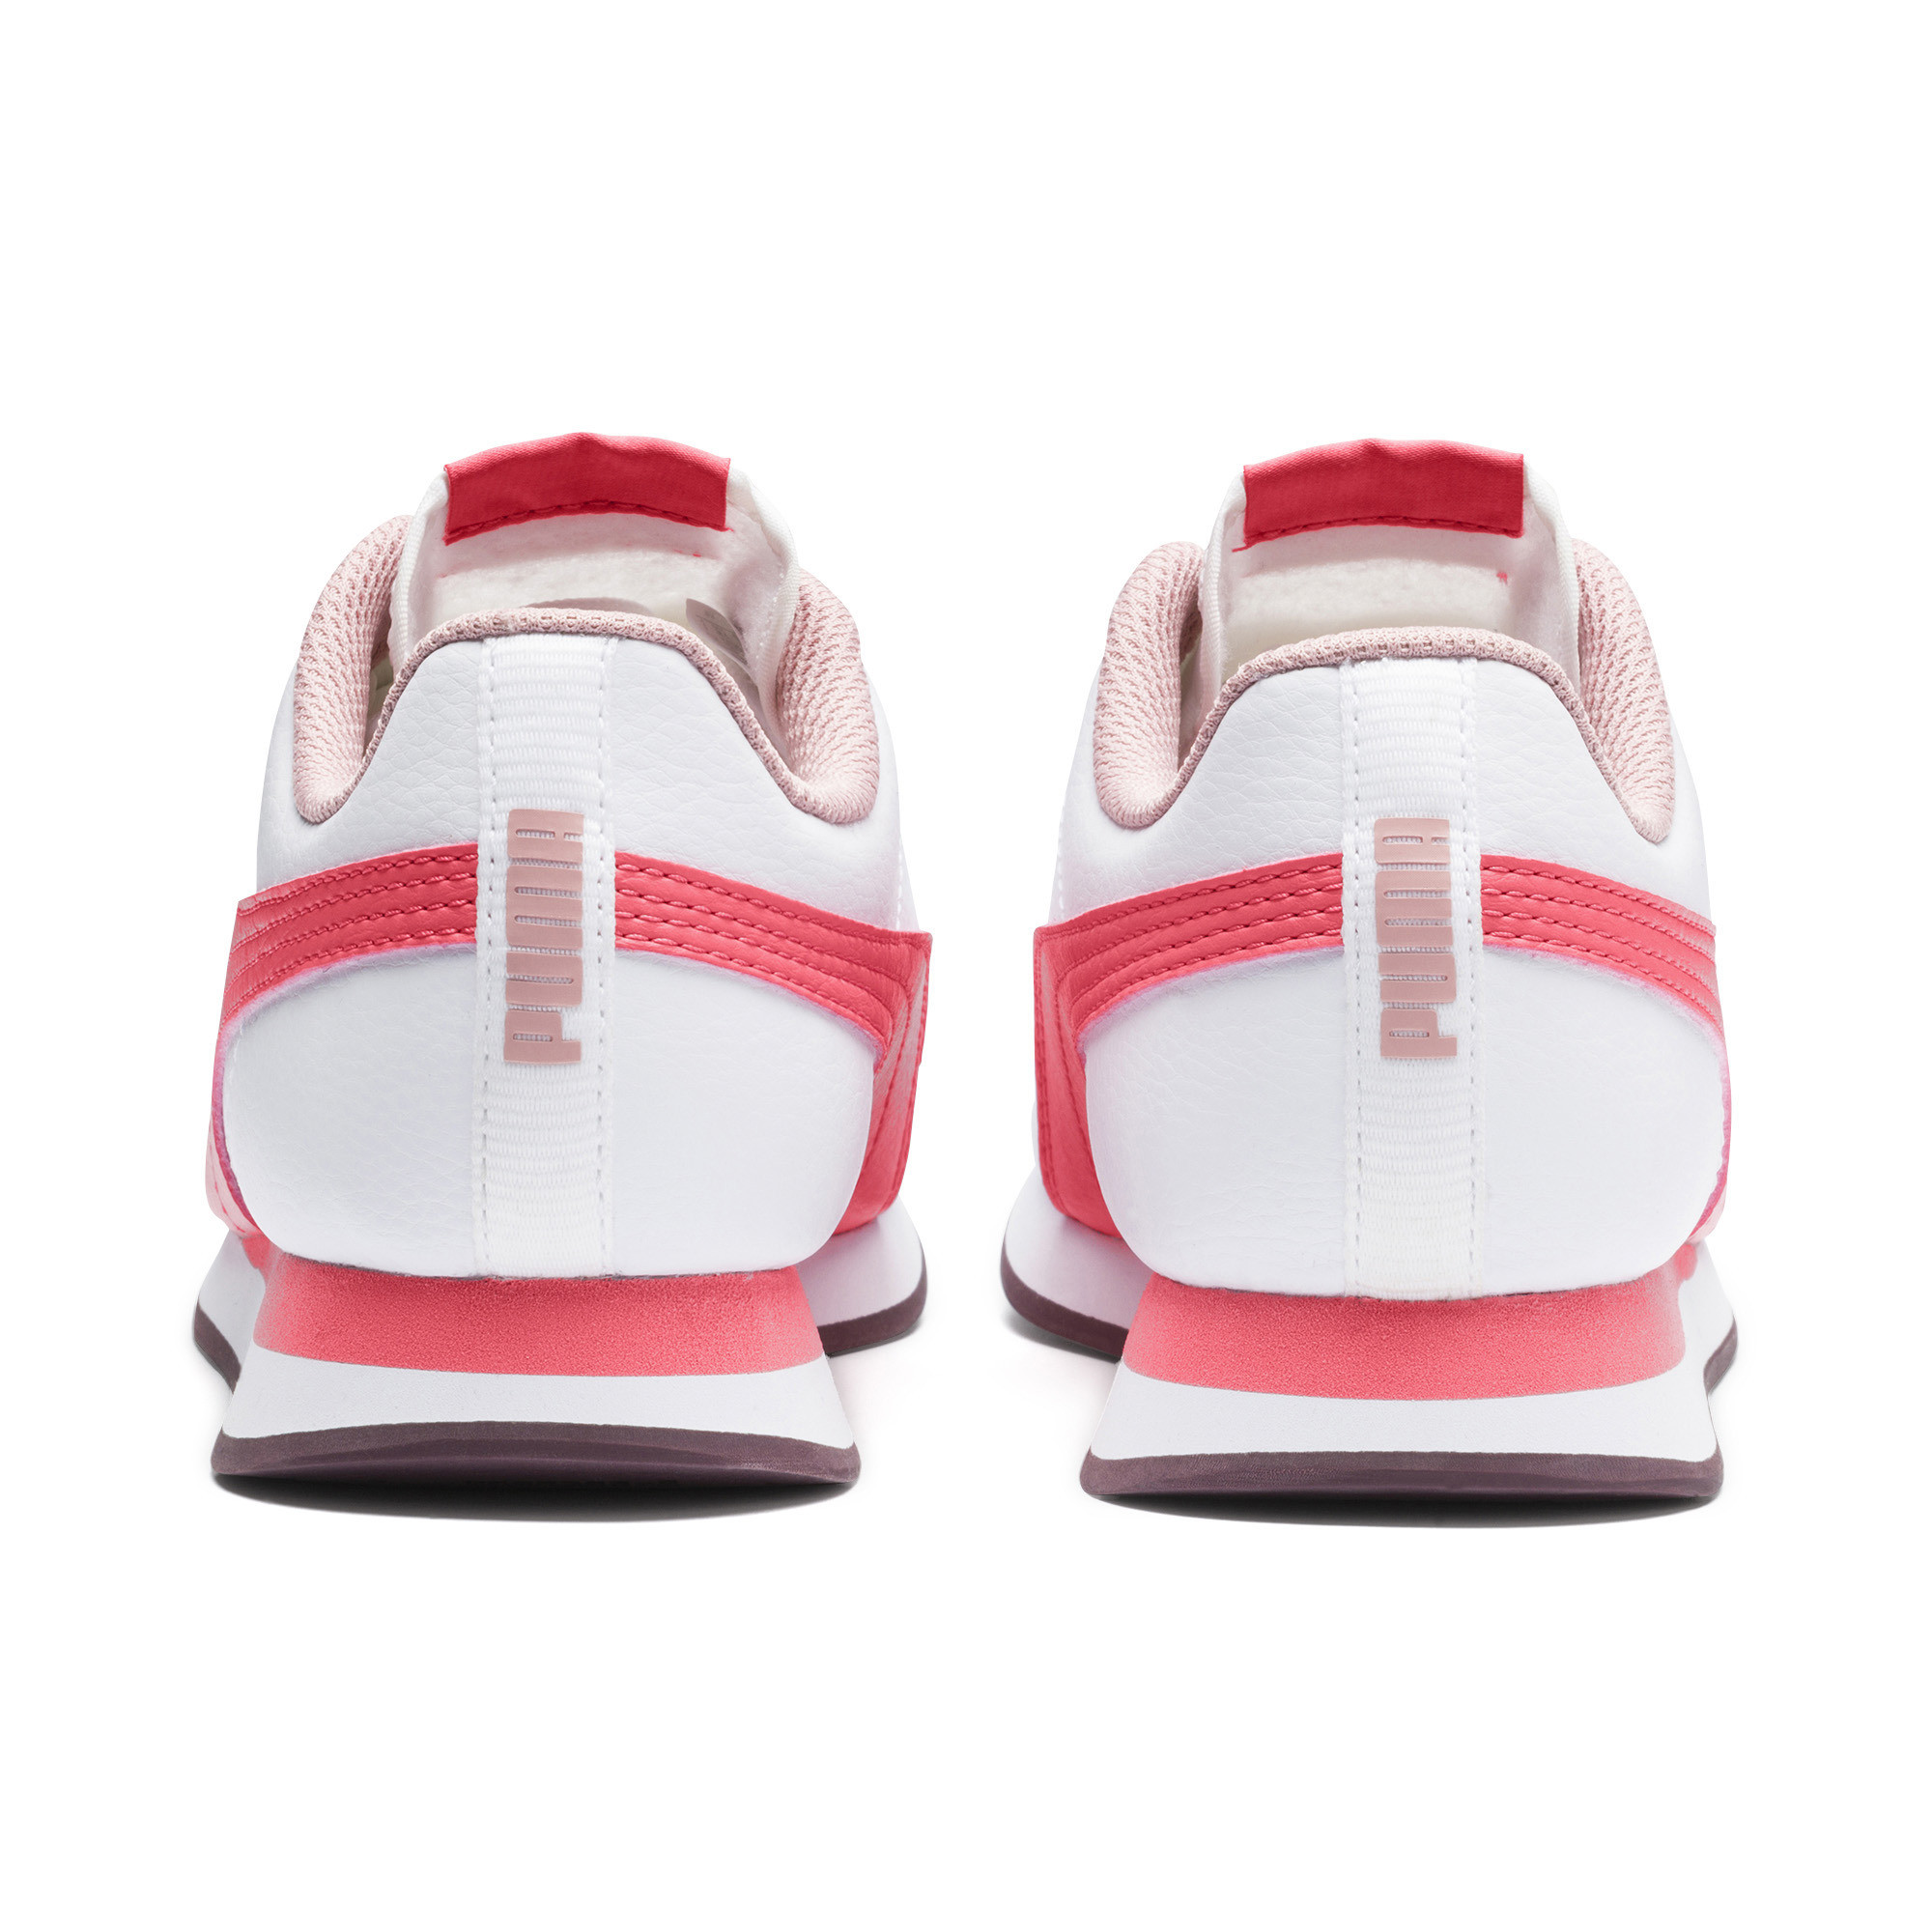 PUMA-Turin-II-Sneakers-JR-Kids-Shoe-Kids thumbnail 21